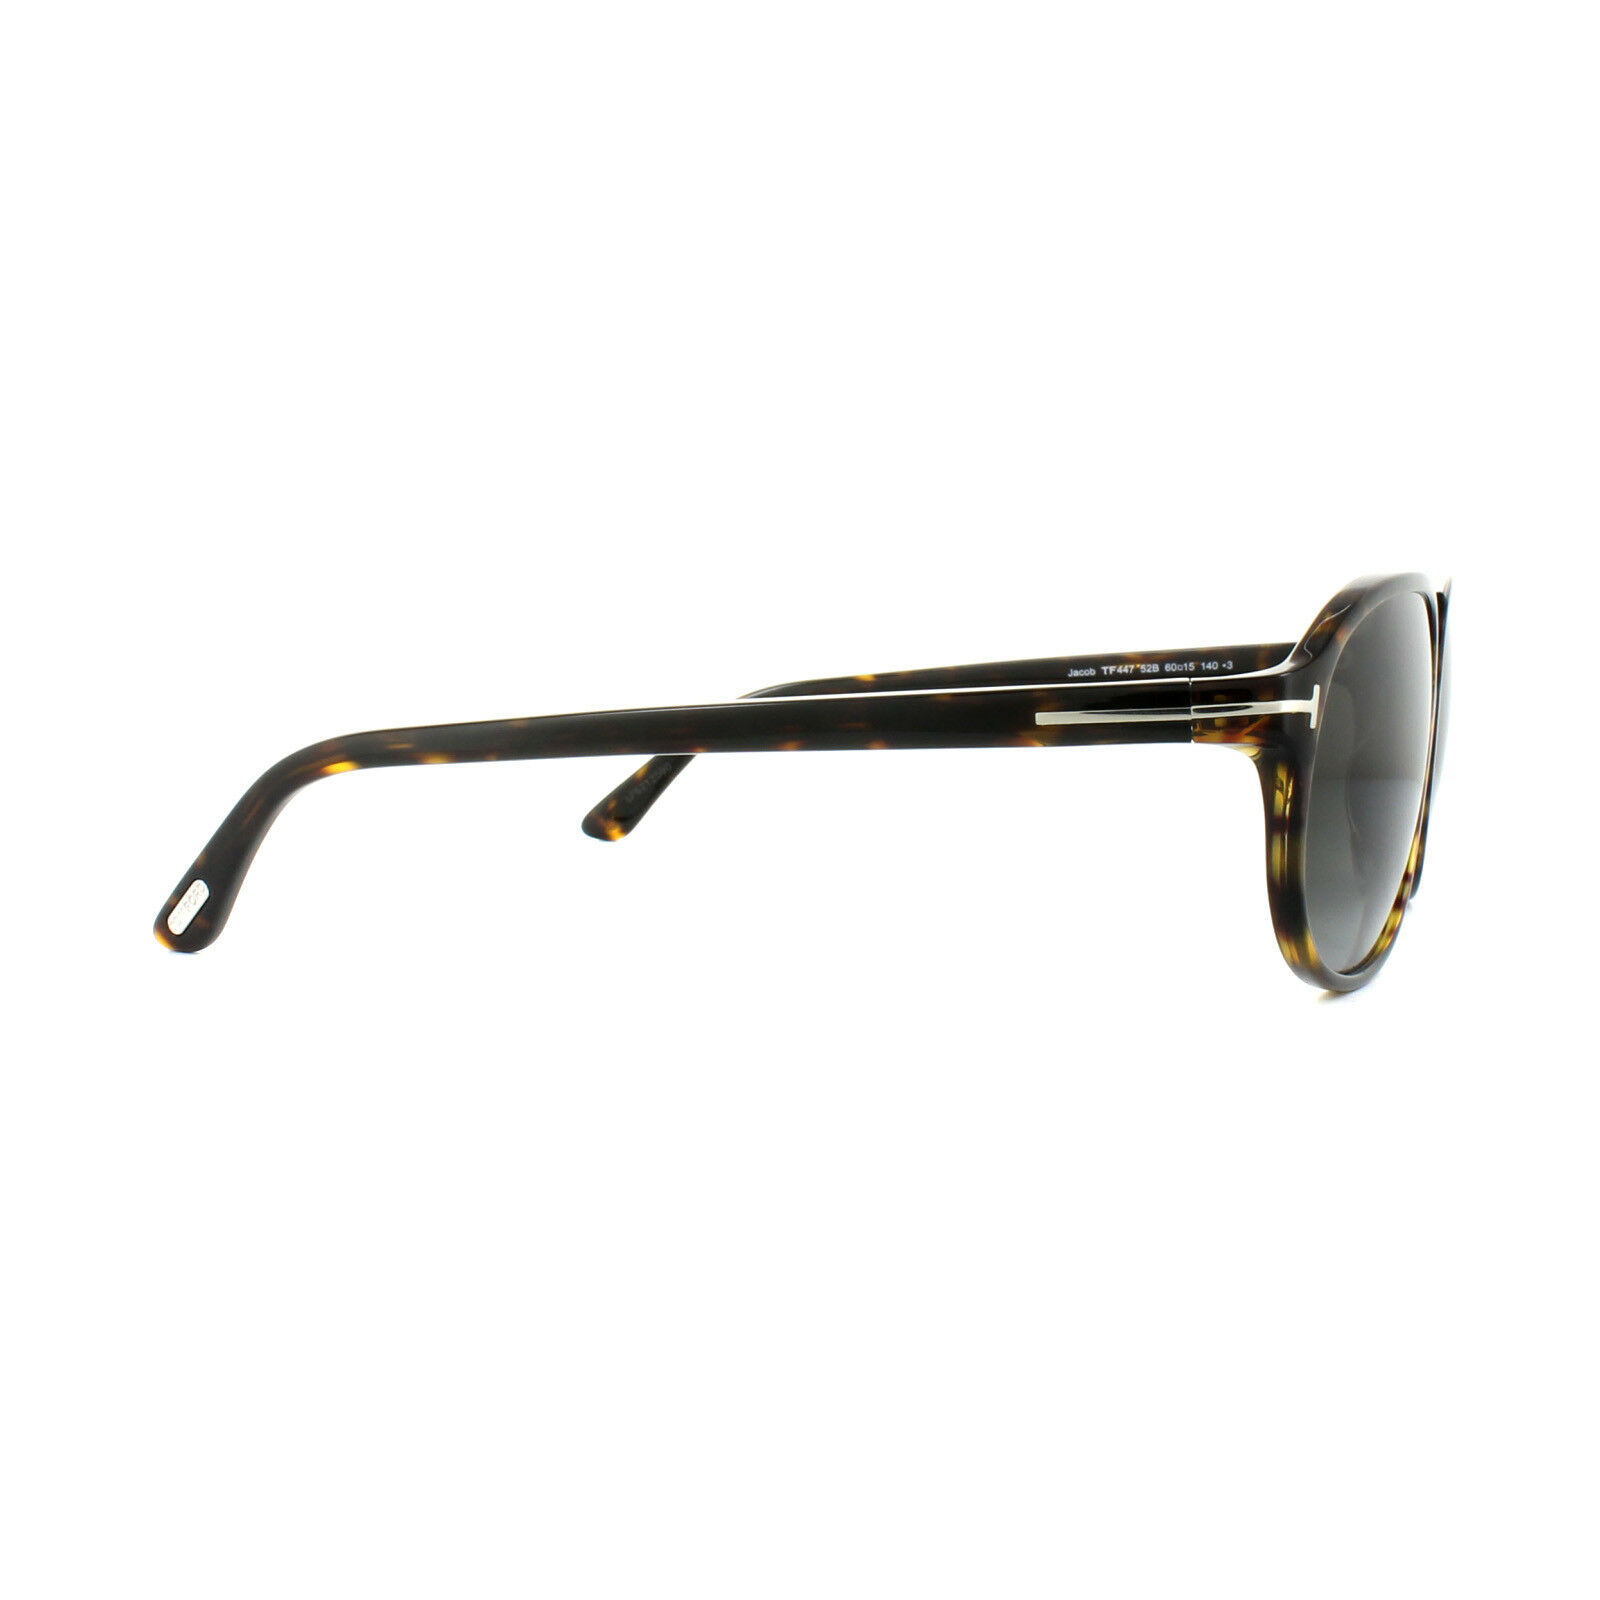 4e8c437065a Tom Ford Sunglasses Men TF 447 Tortoise 52b Jacob 60mm for sale online